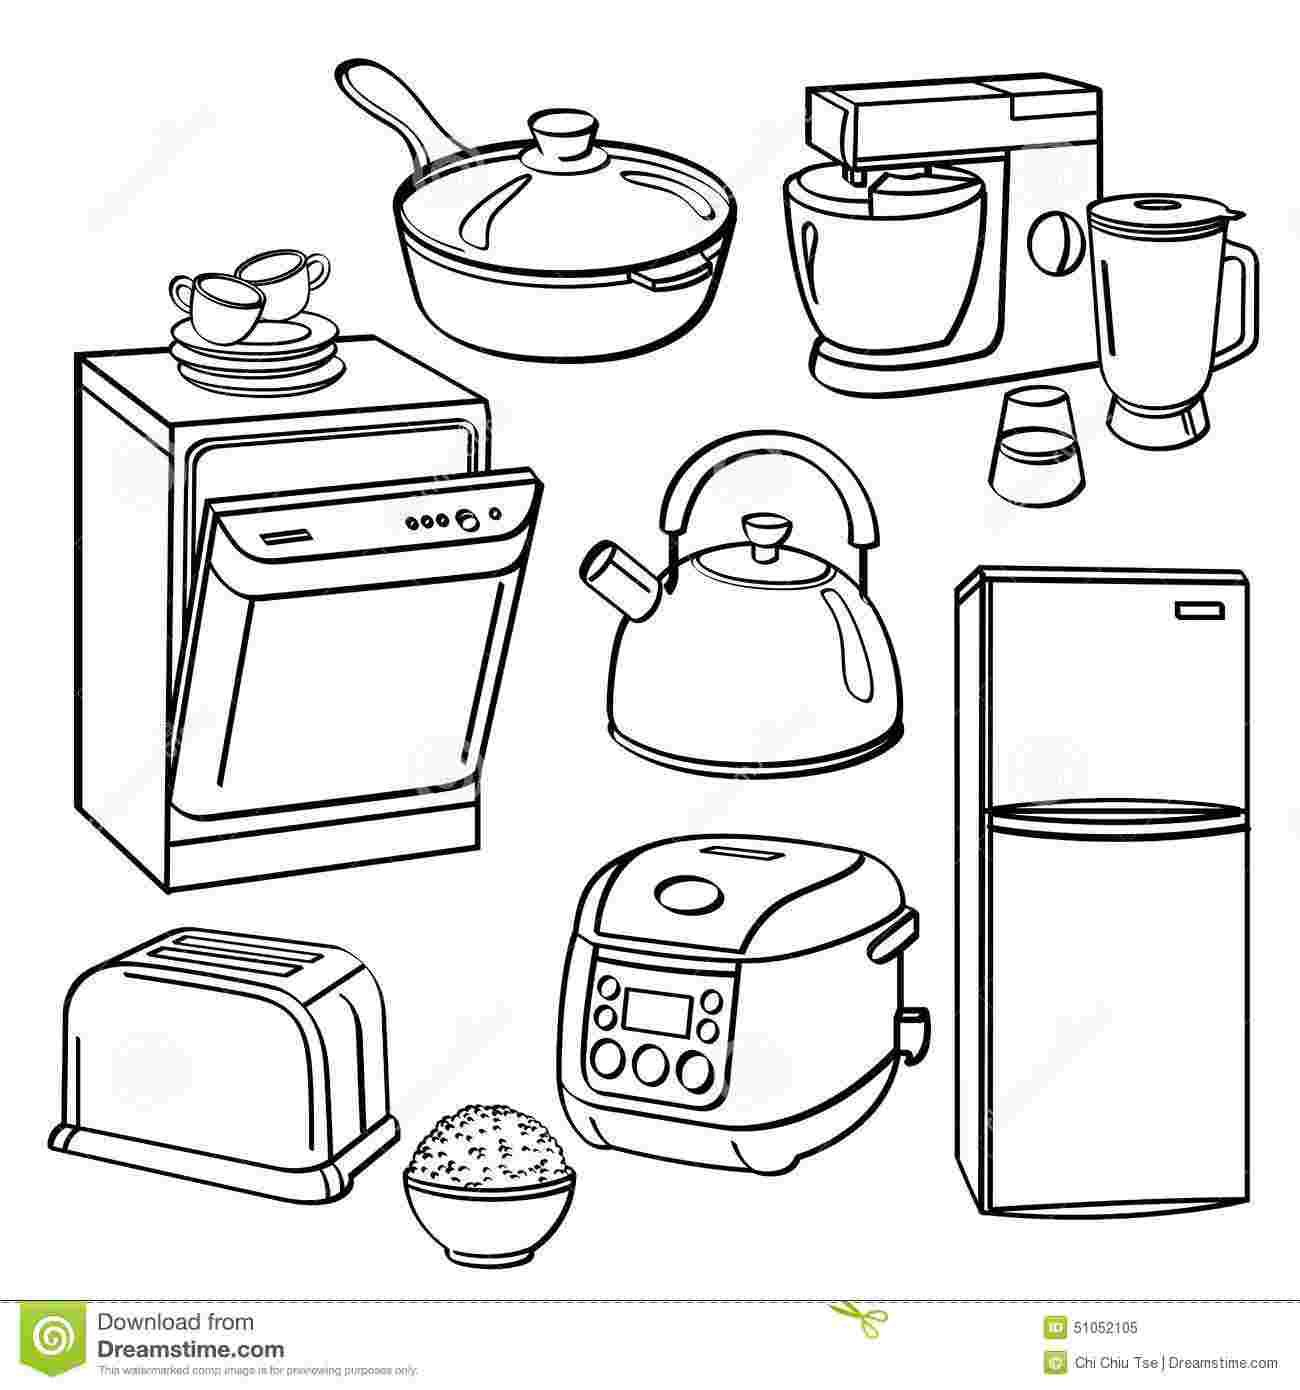 Kitchen Tools Coloring Pages Coloring Pages Easy Doodle Art Food Coloring Pages